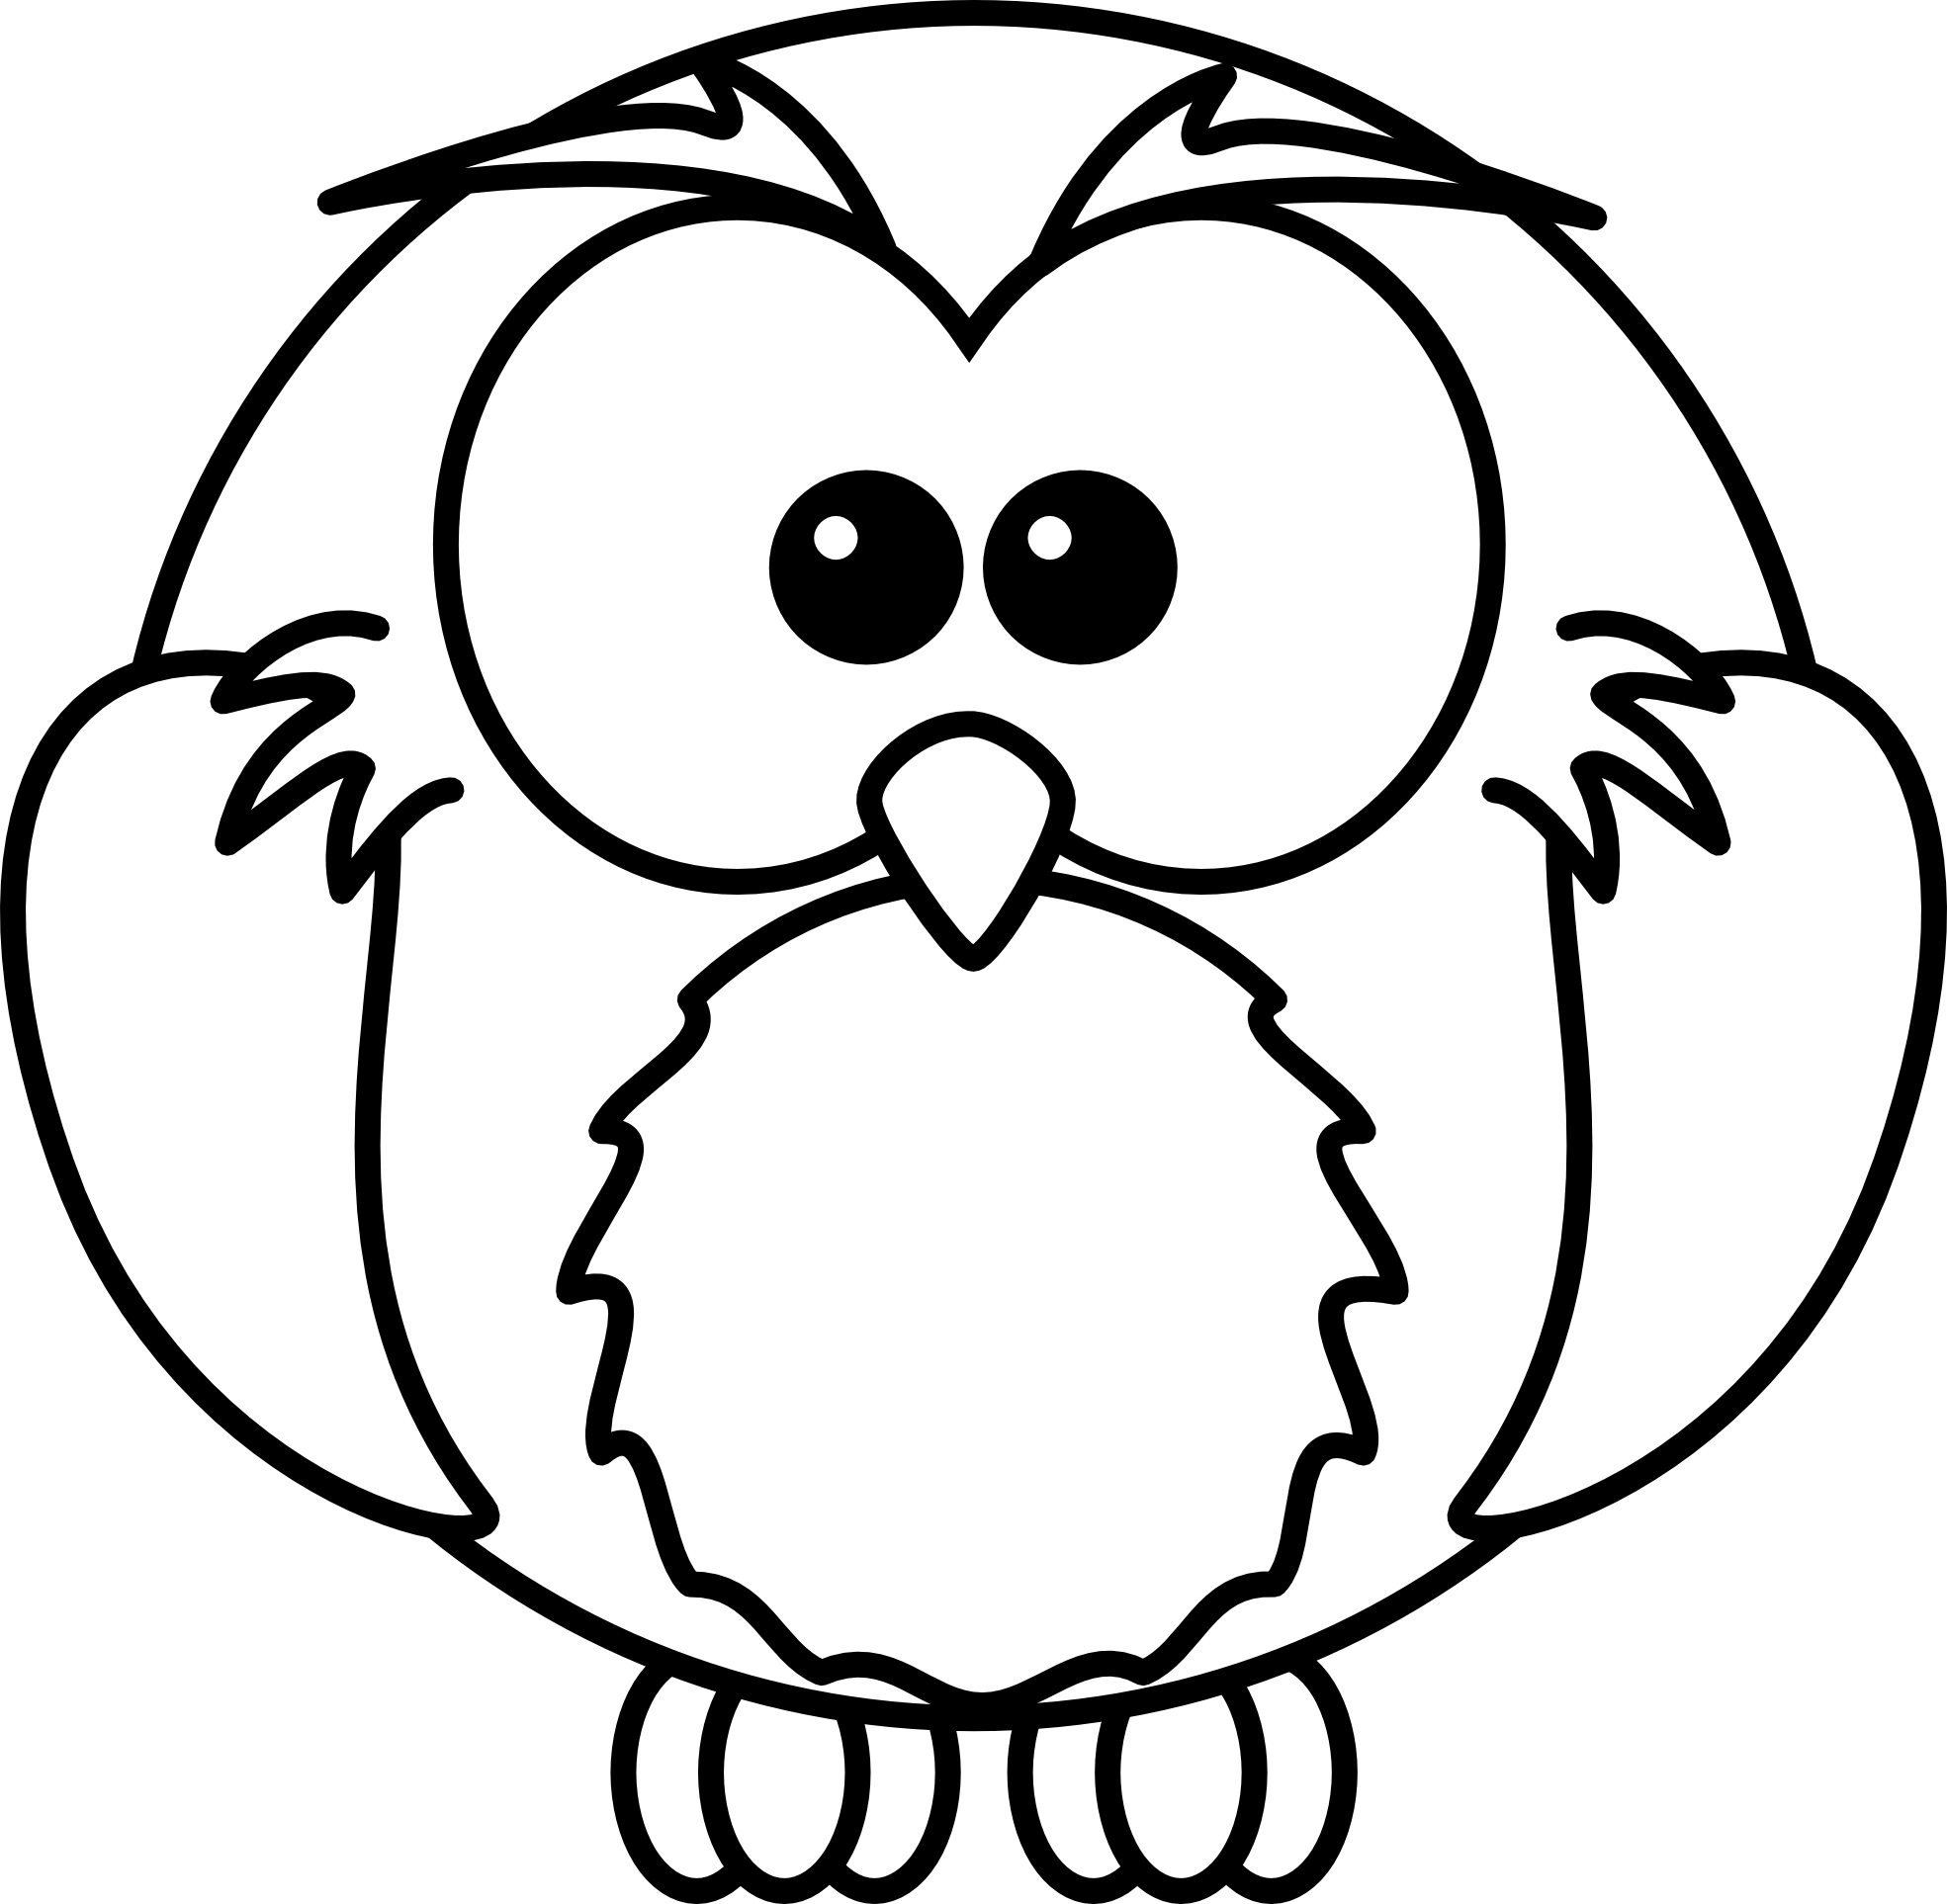 Baby Owl Clipart Black And White Cartoon-Baby Owl Clipart Black And White Cartoon Clip Art Black And White 1-2